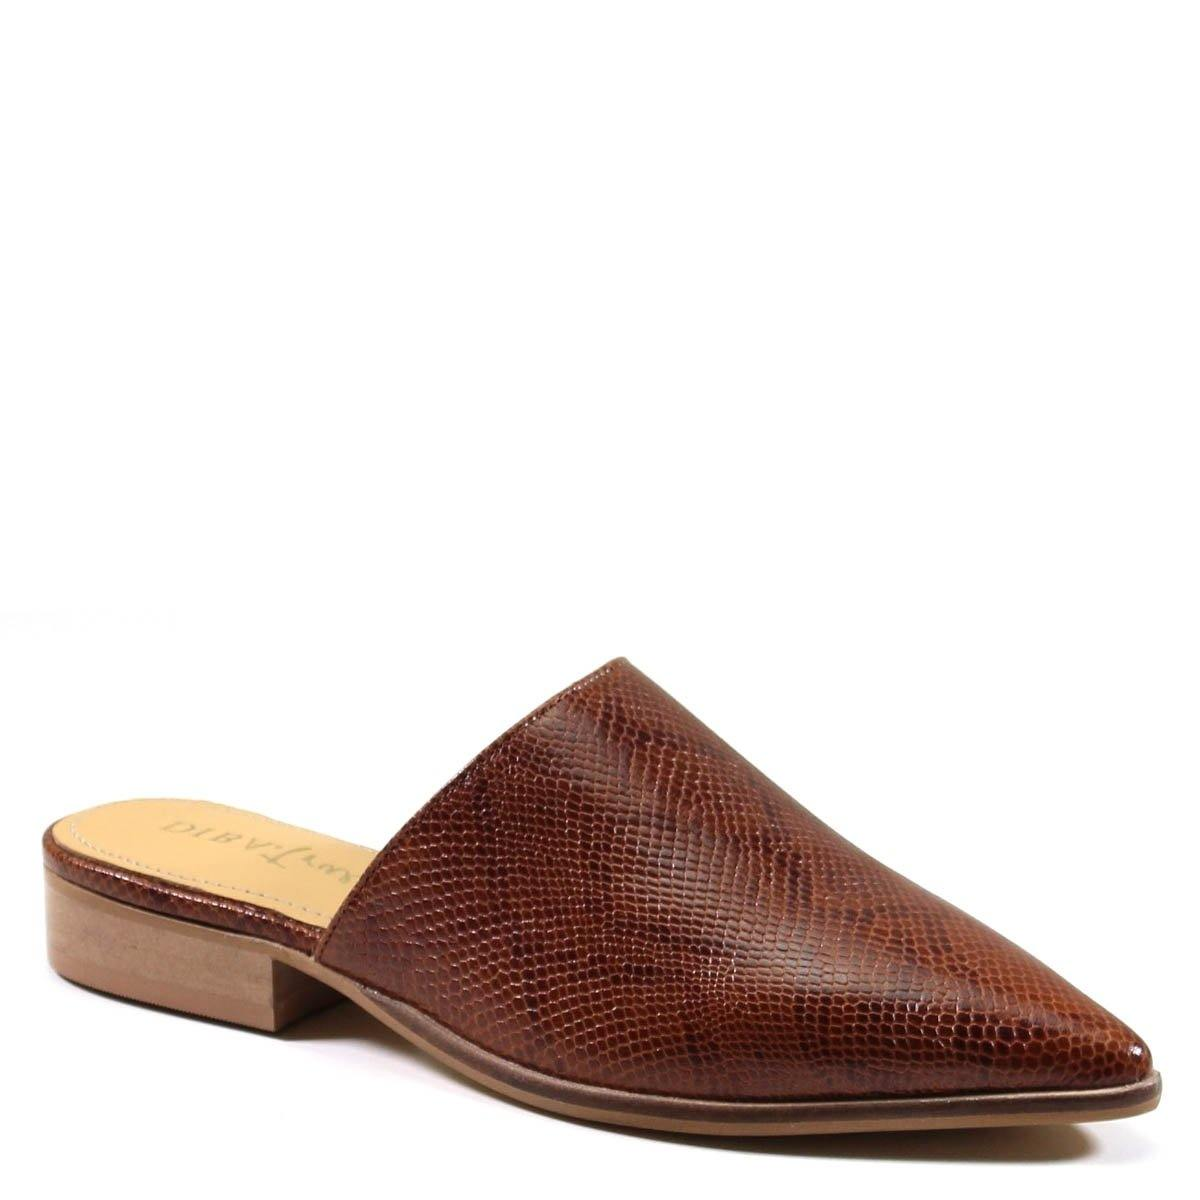 High Up Snake Slip-ons by DibaTrue